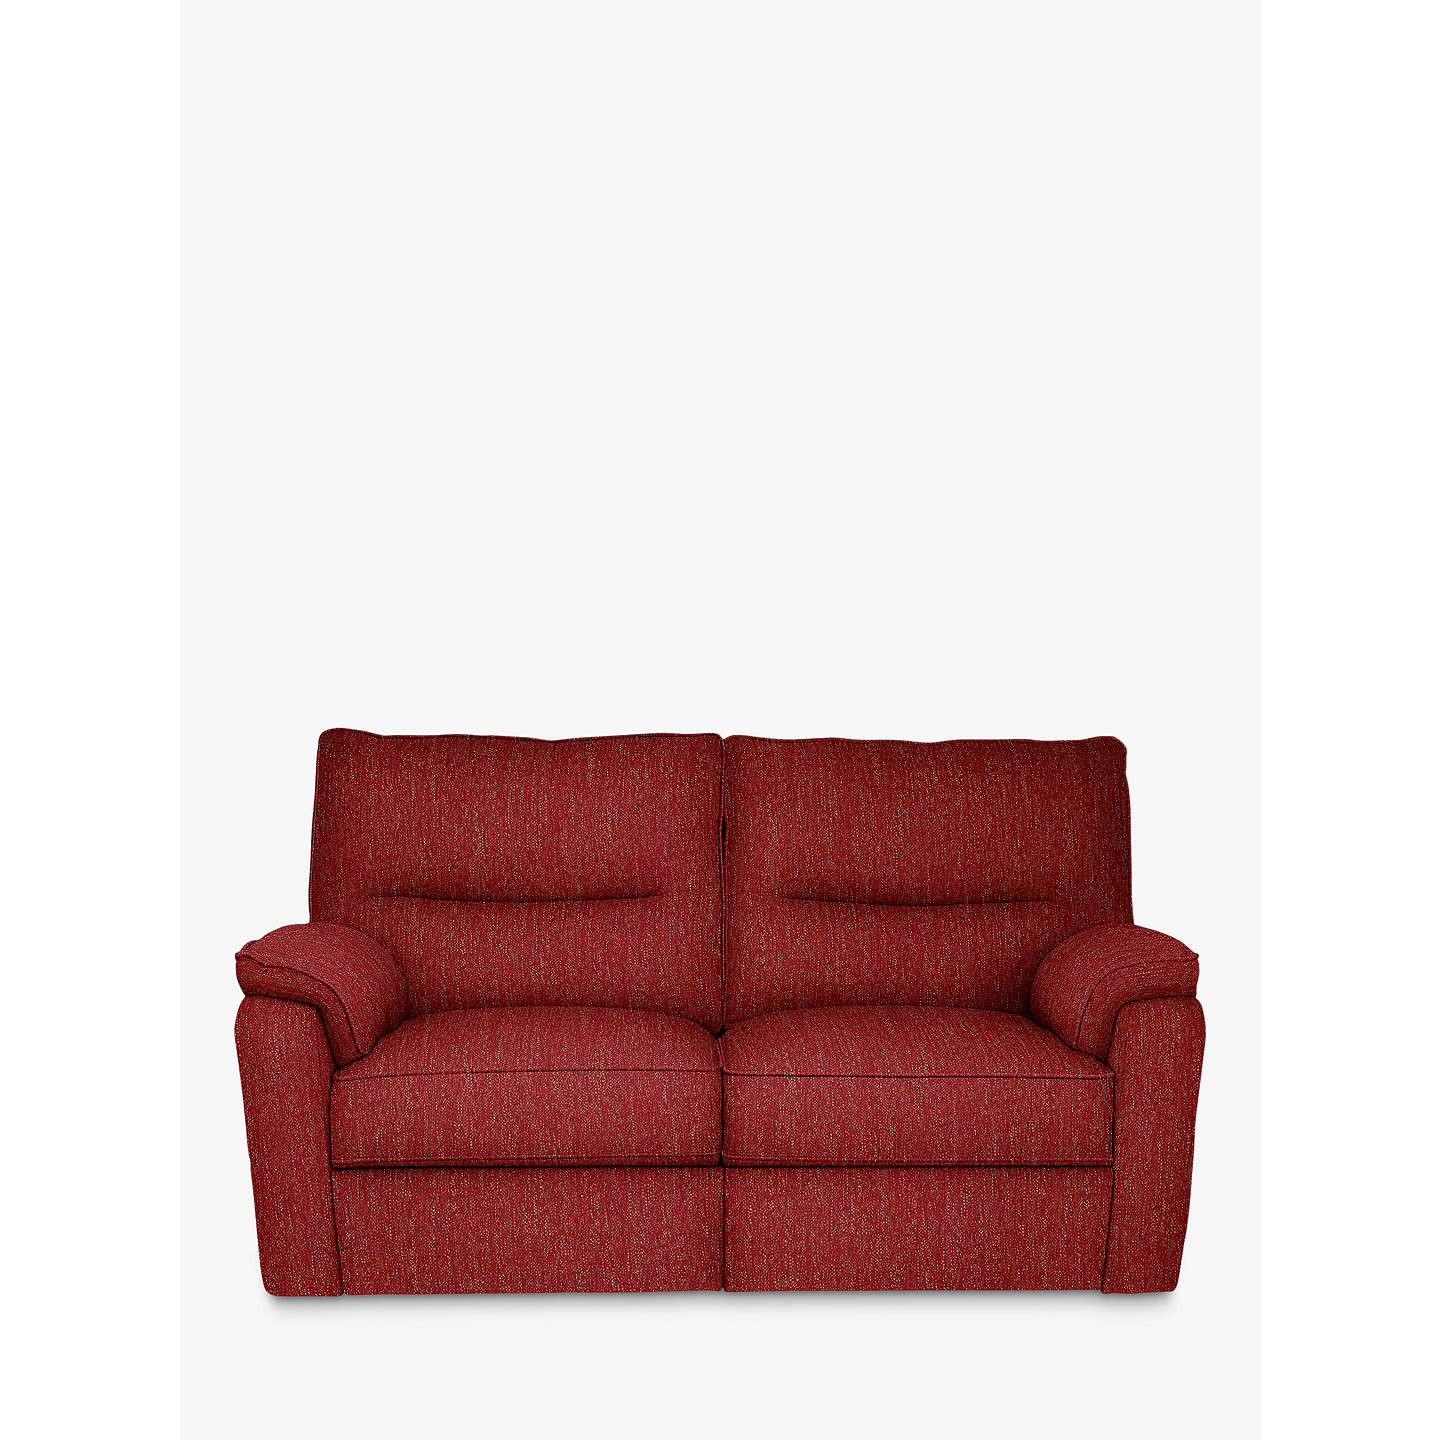 John Lewis Carlisle Small 2 Seater Recliner Sofa Ffion Cherry Online At Johnlewis